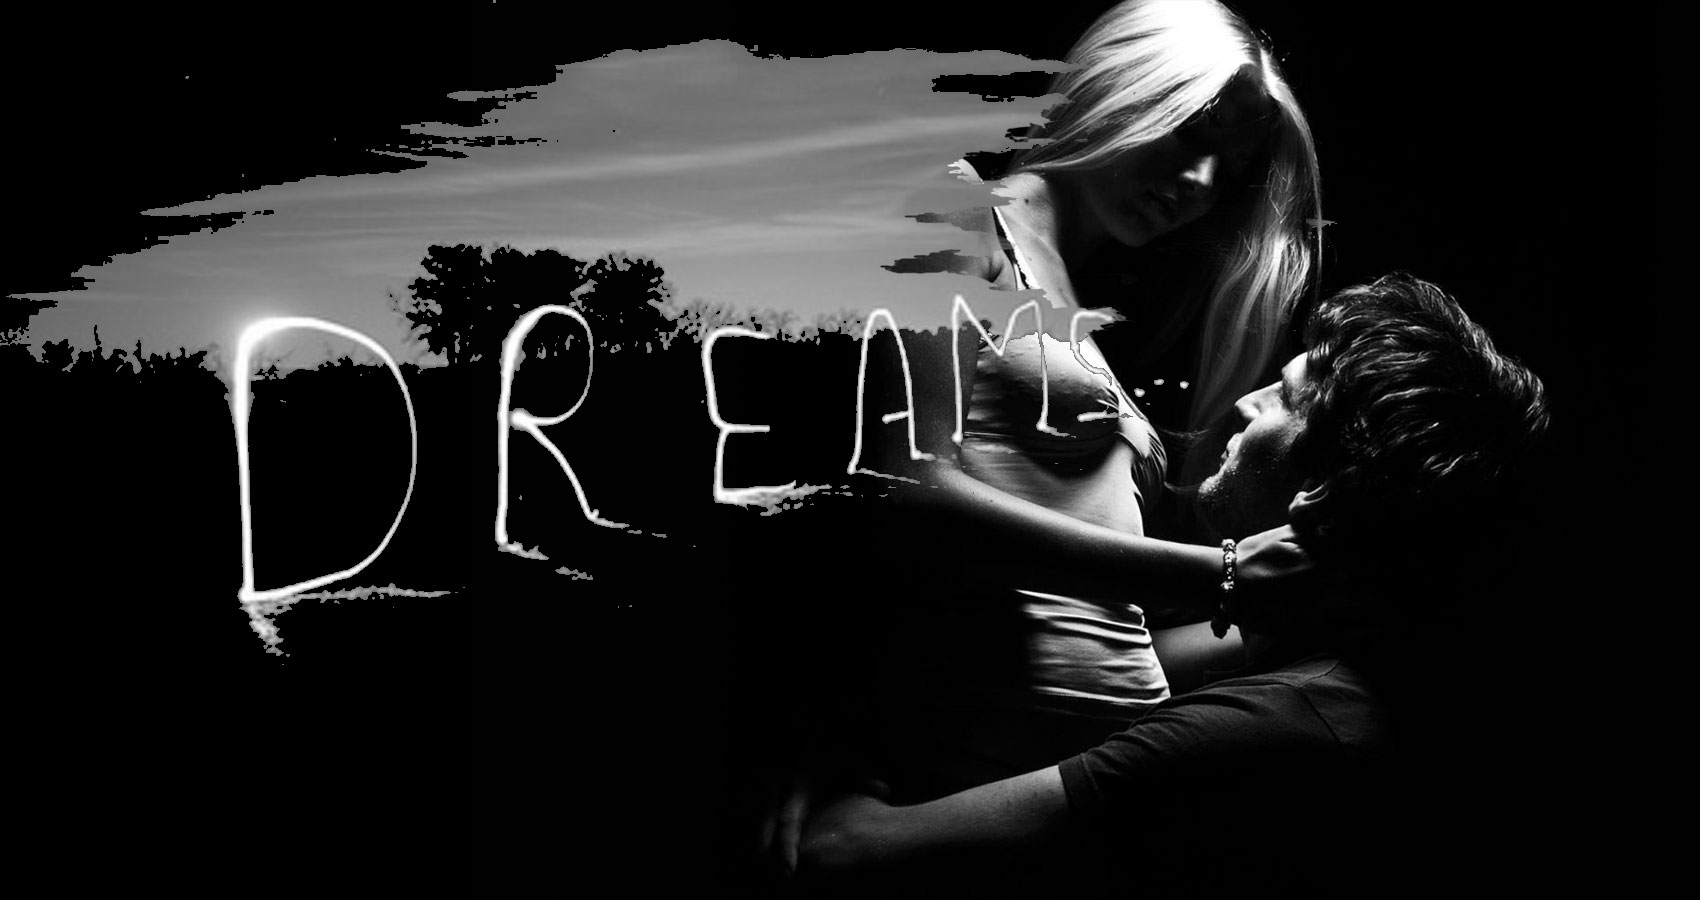 Dreams, written by Lana Wesley at Spillwords.com